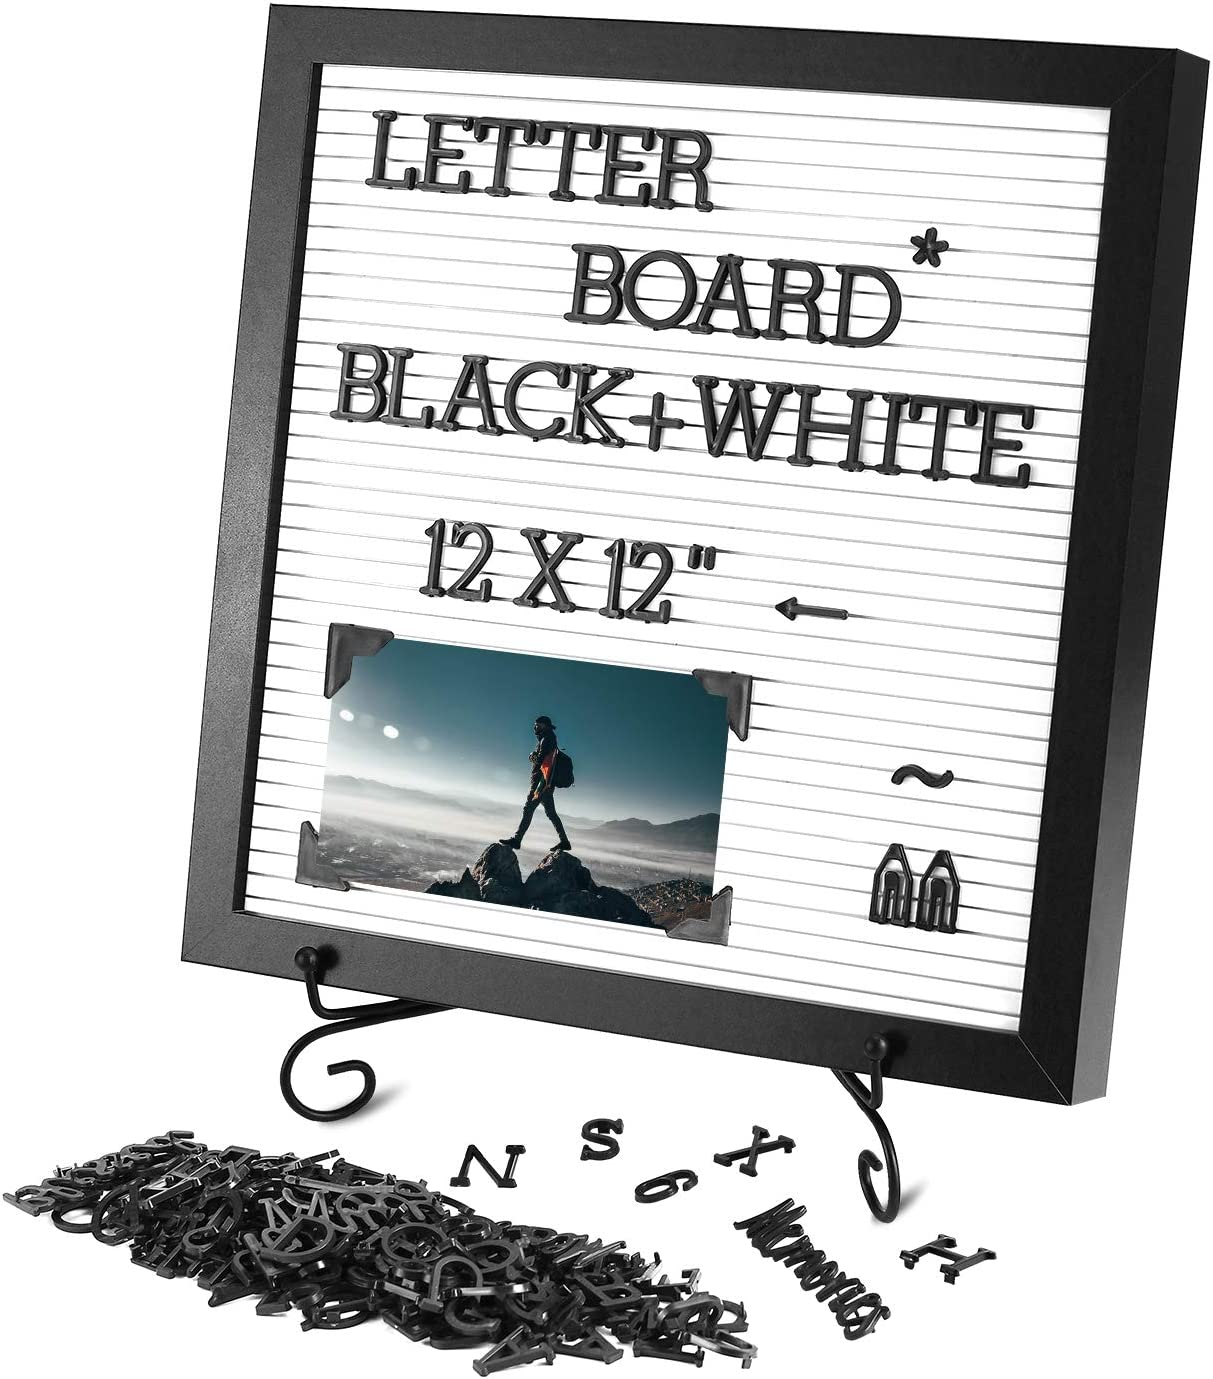 Changeable Letter Board 12x12 inches, Plastic Message Board with Metal Stand, Black Characters & Photo Clips, Message Sign for Wall/Tabletop Decor, Announcements and Menus Display.(Black & White)